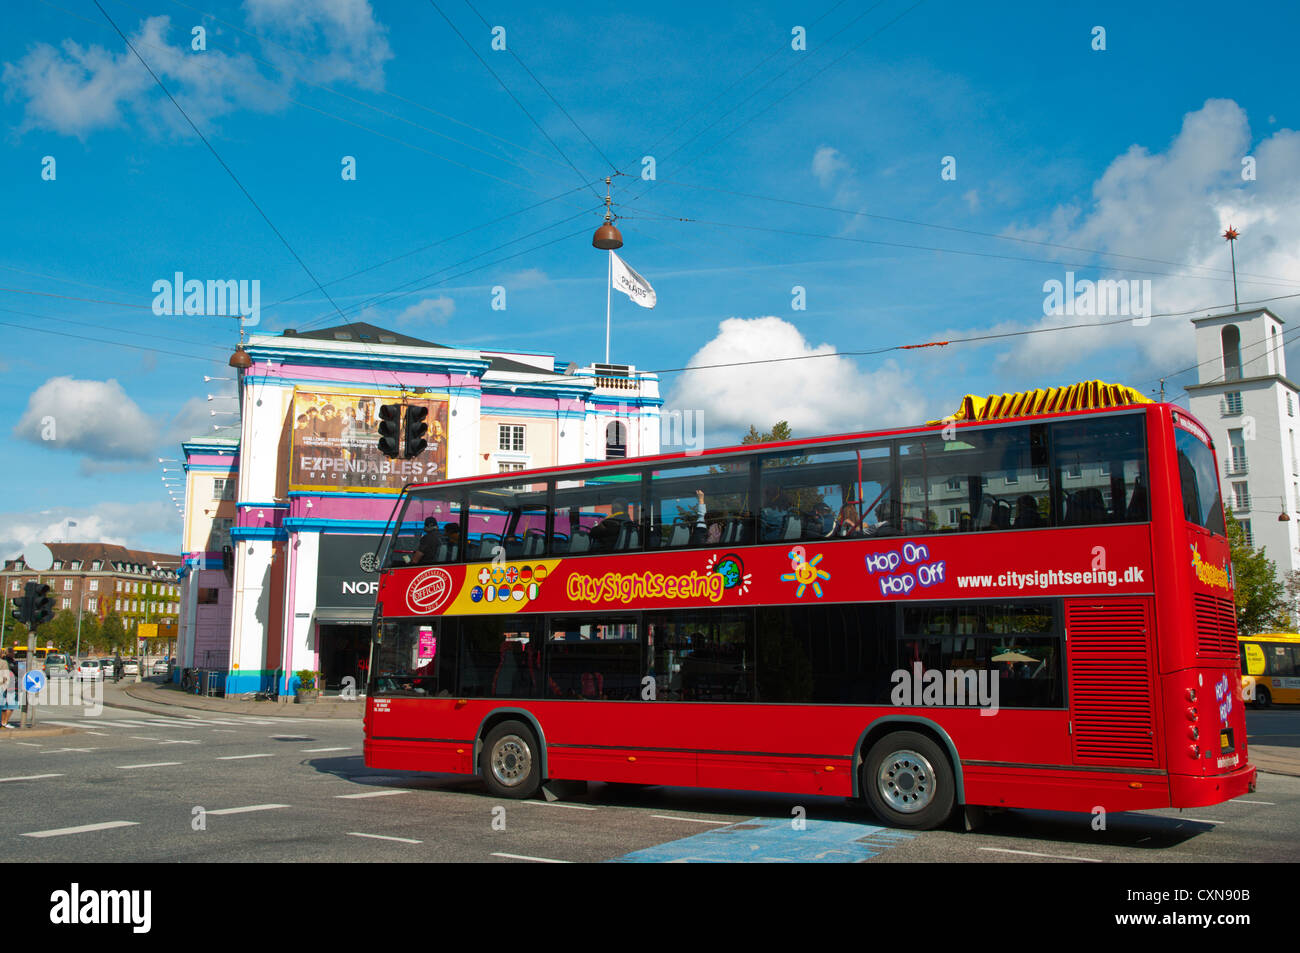 Sightseeing double decker tour bus Axeltorv square central Copenhagen Denmark Europe - Stock Image